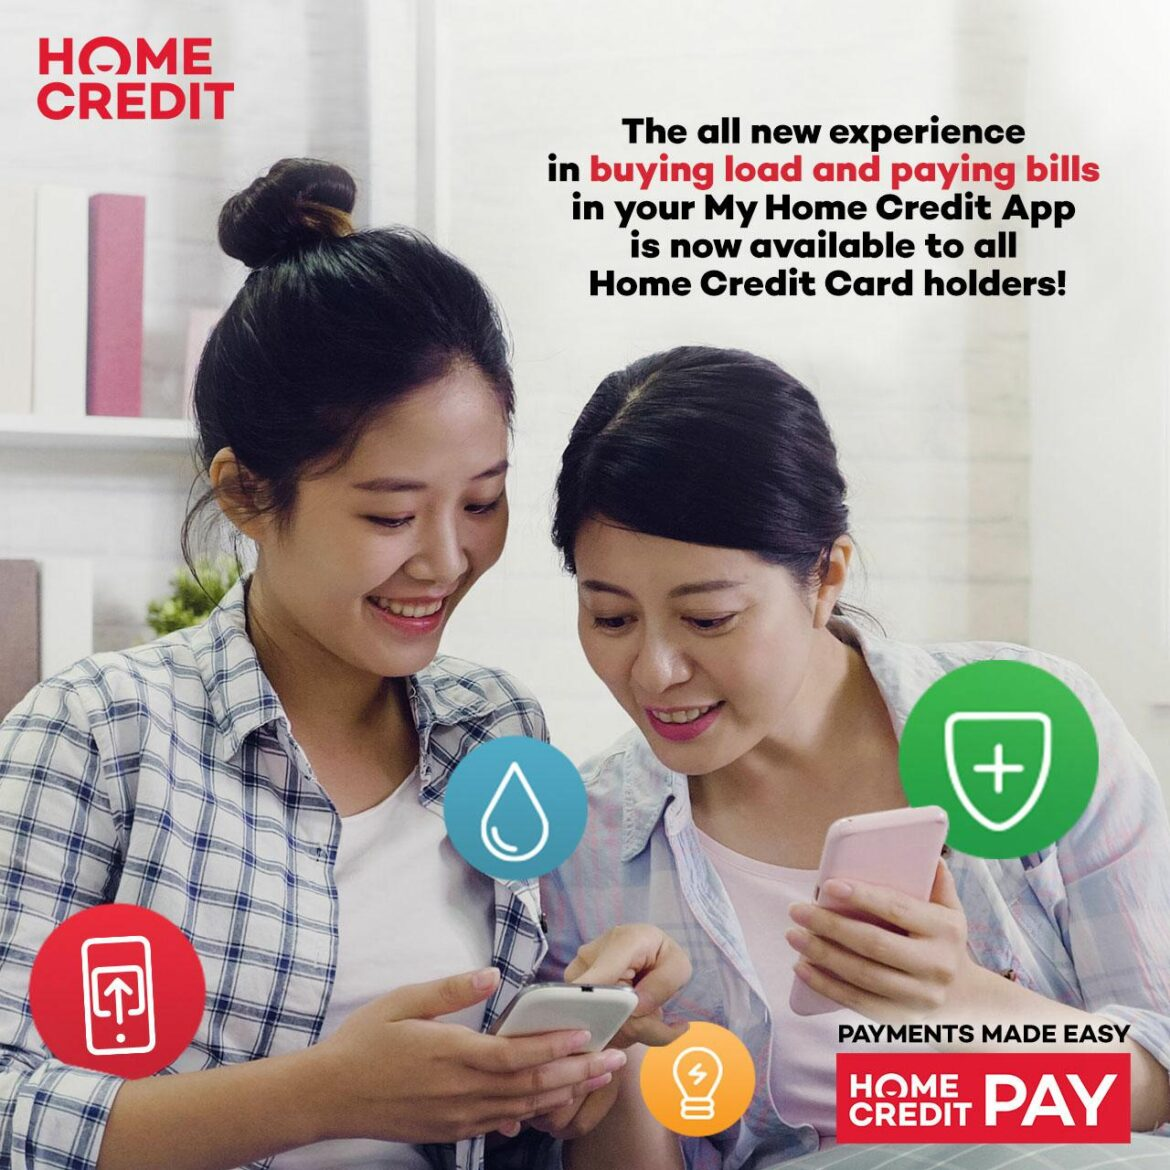 Pay Bills, Buy Load, and More with My Home Credit App